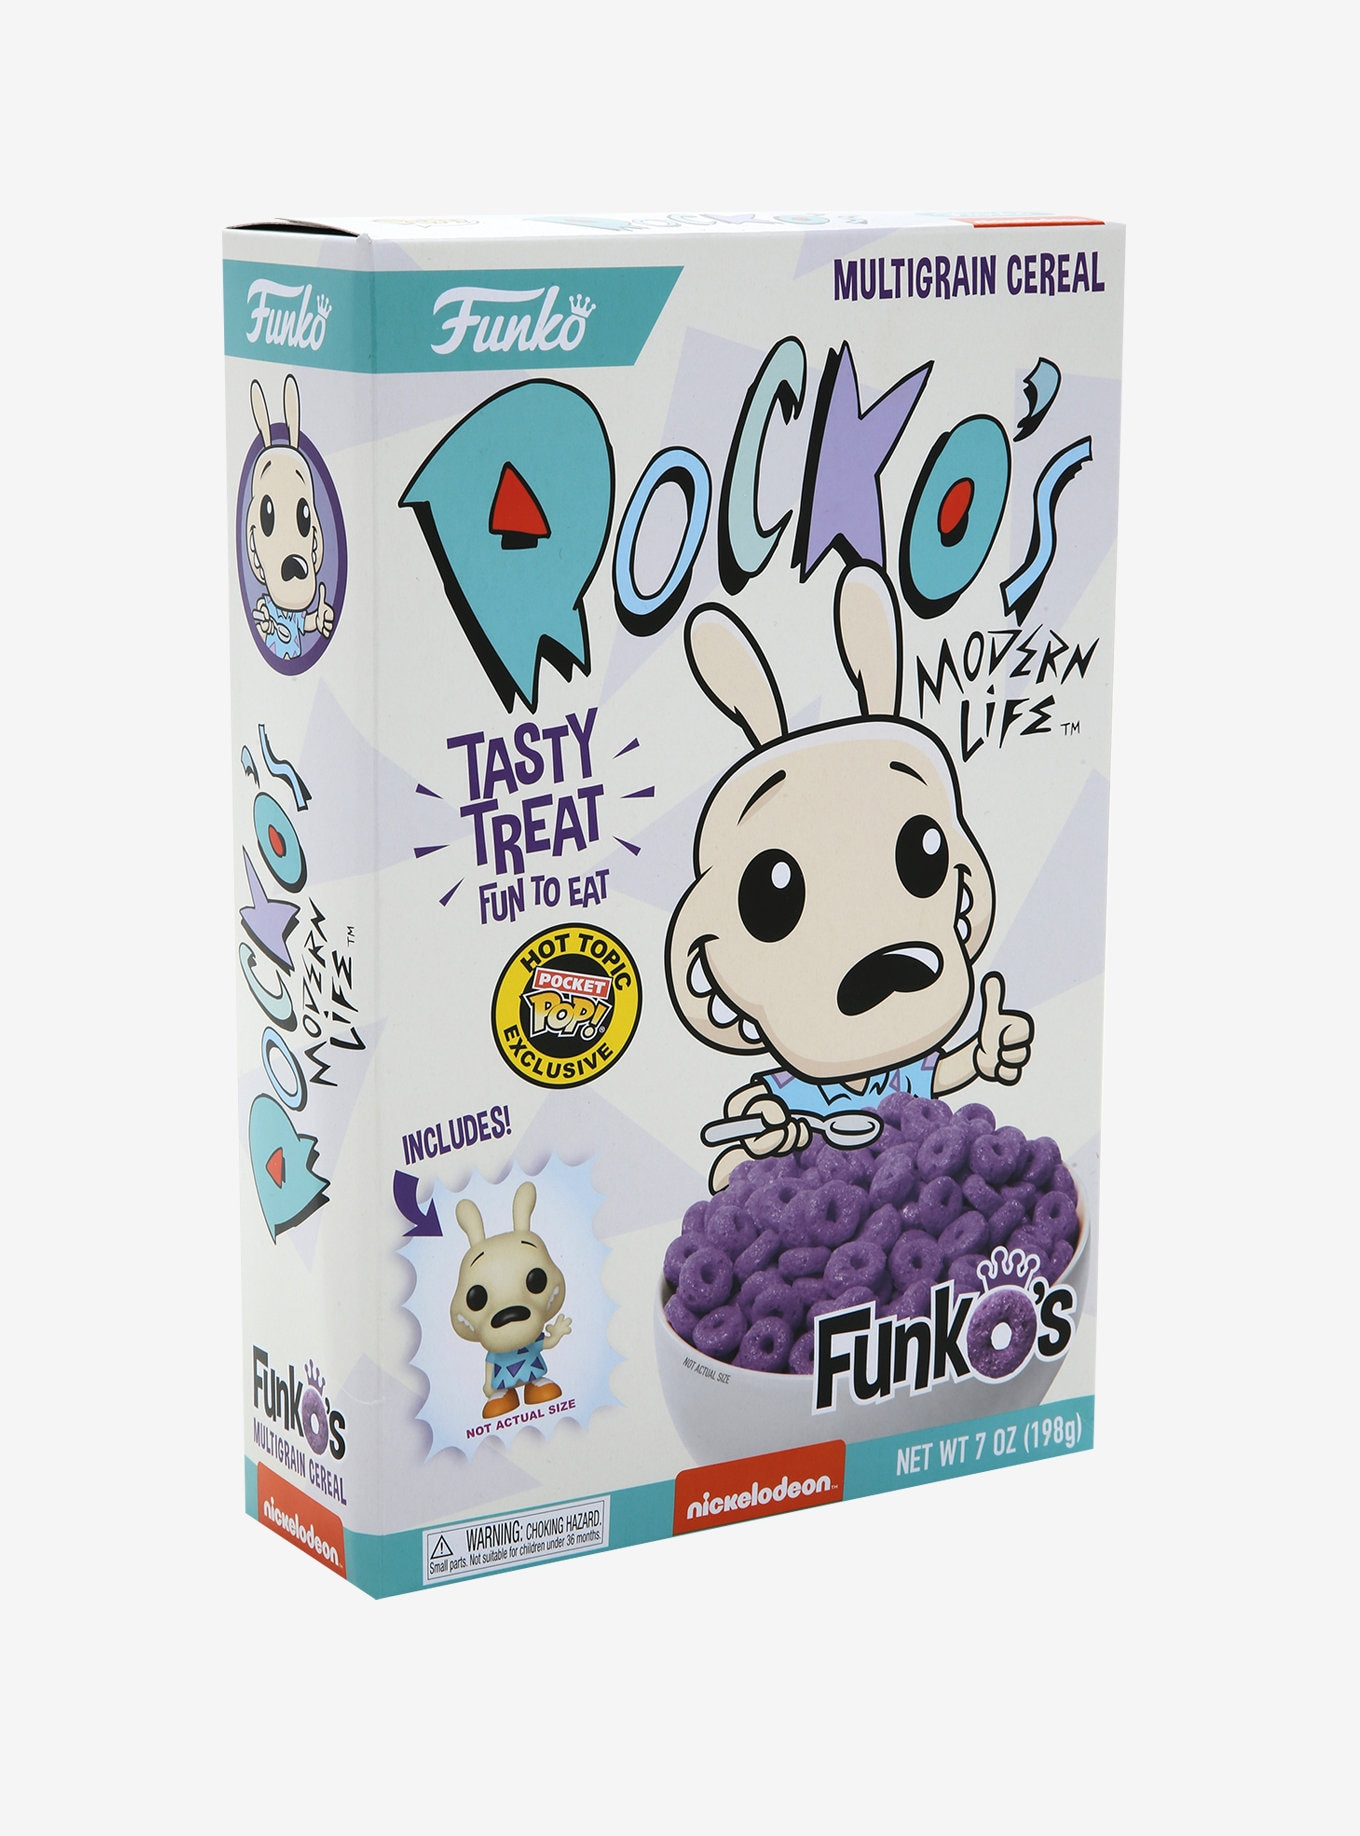 Funko Rocko's Modern Life Funko's Cereal With Pocket Pop! Rocko Cereal Hot Topic Exclusive